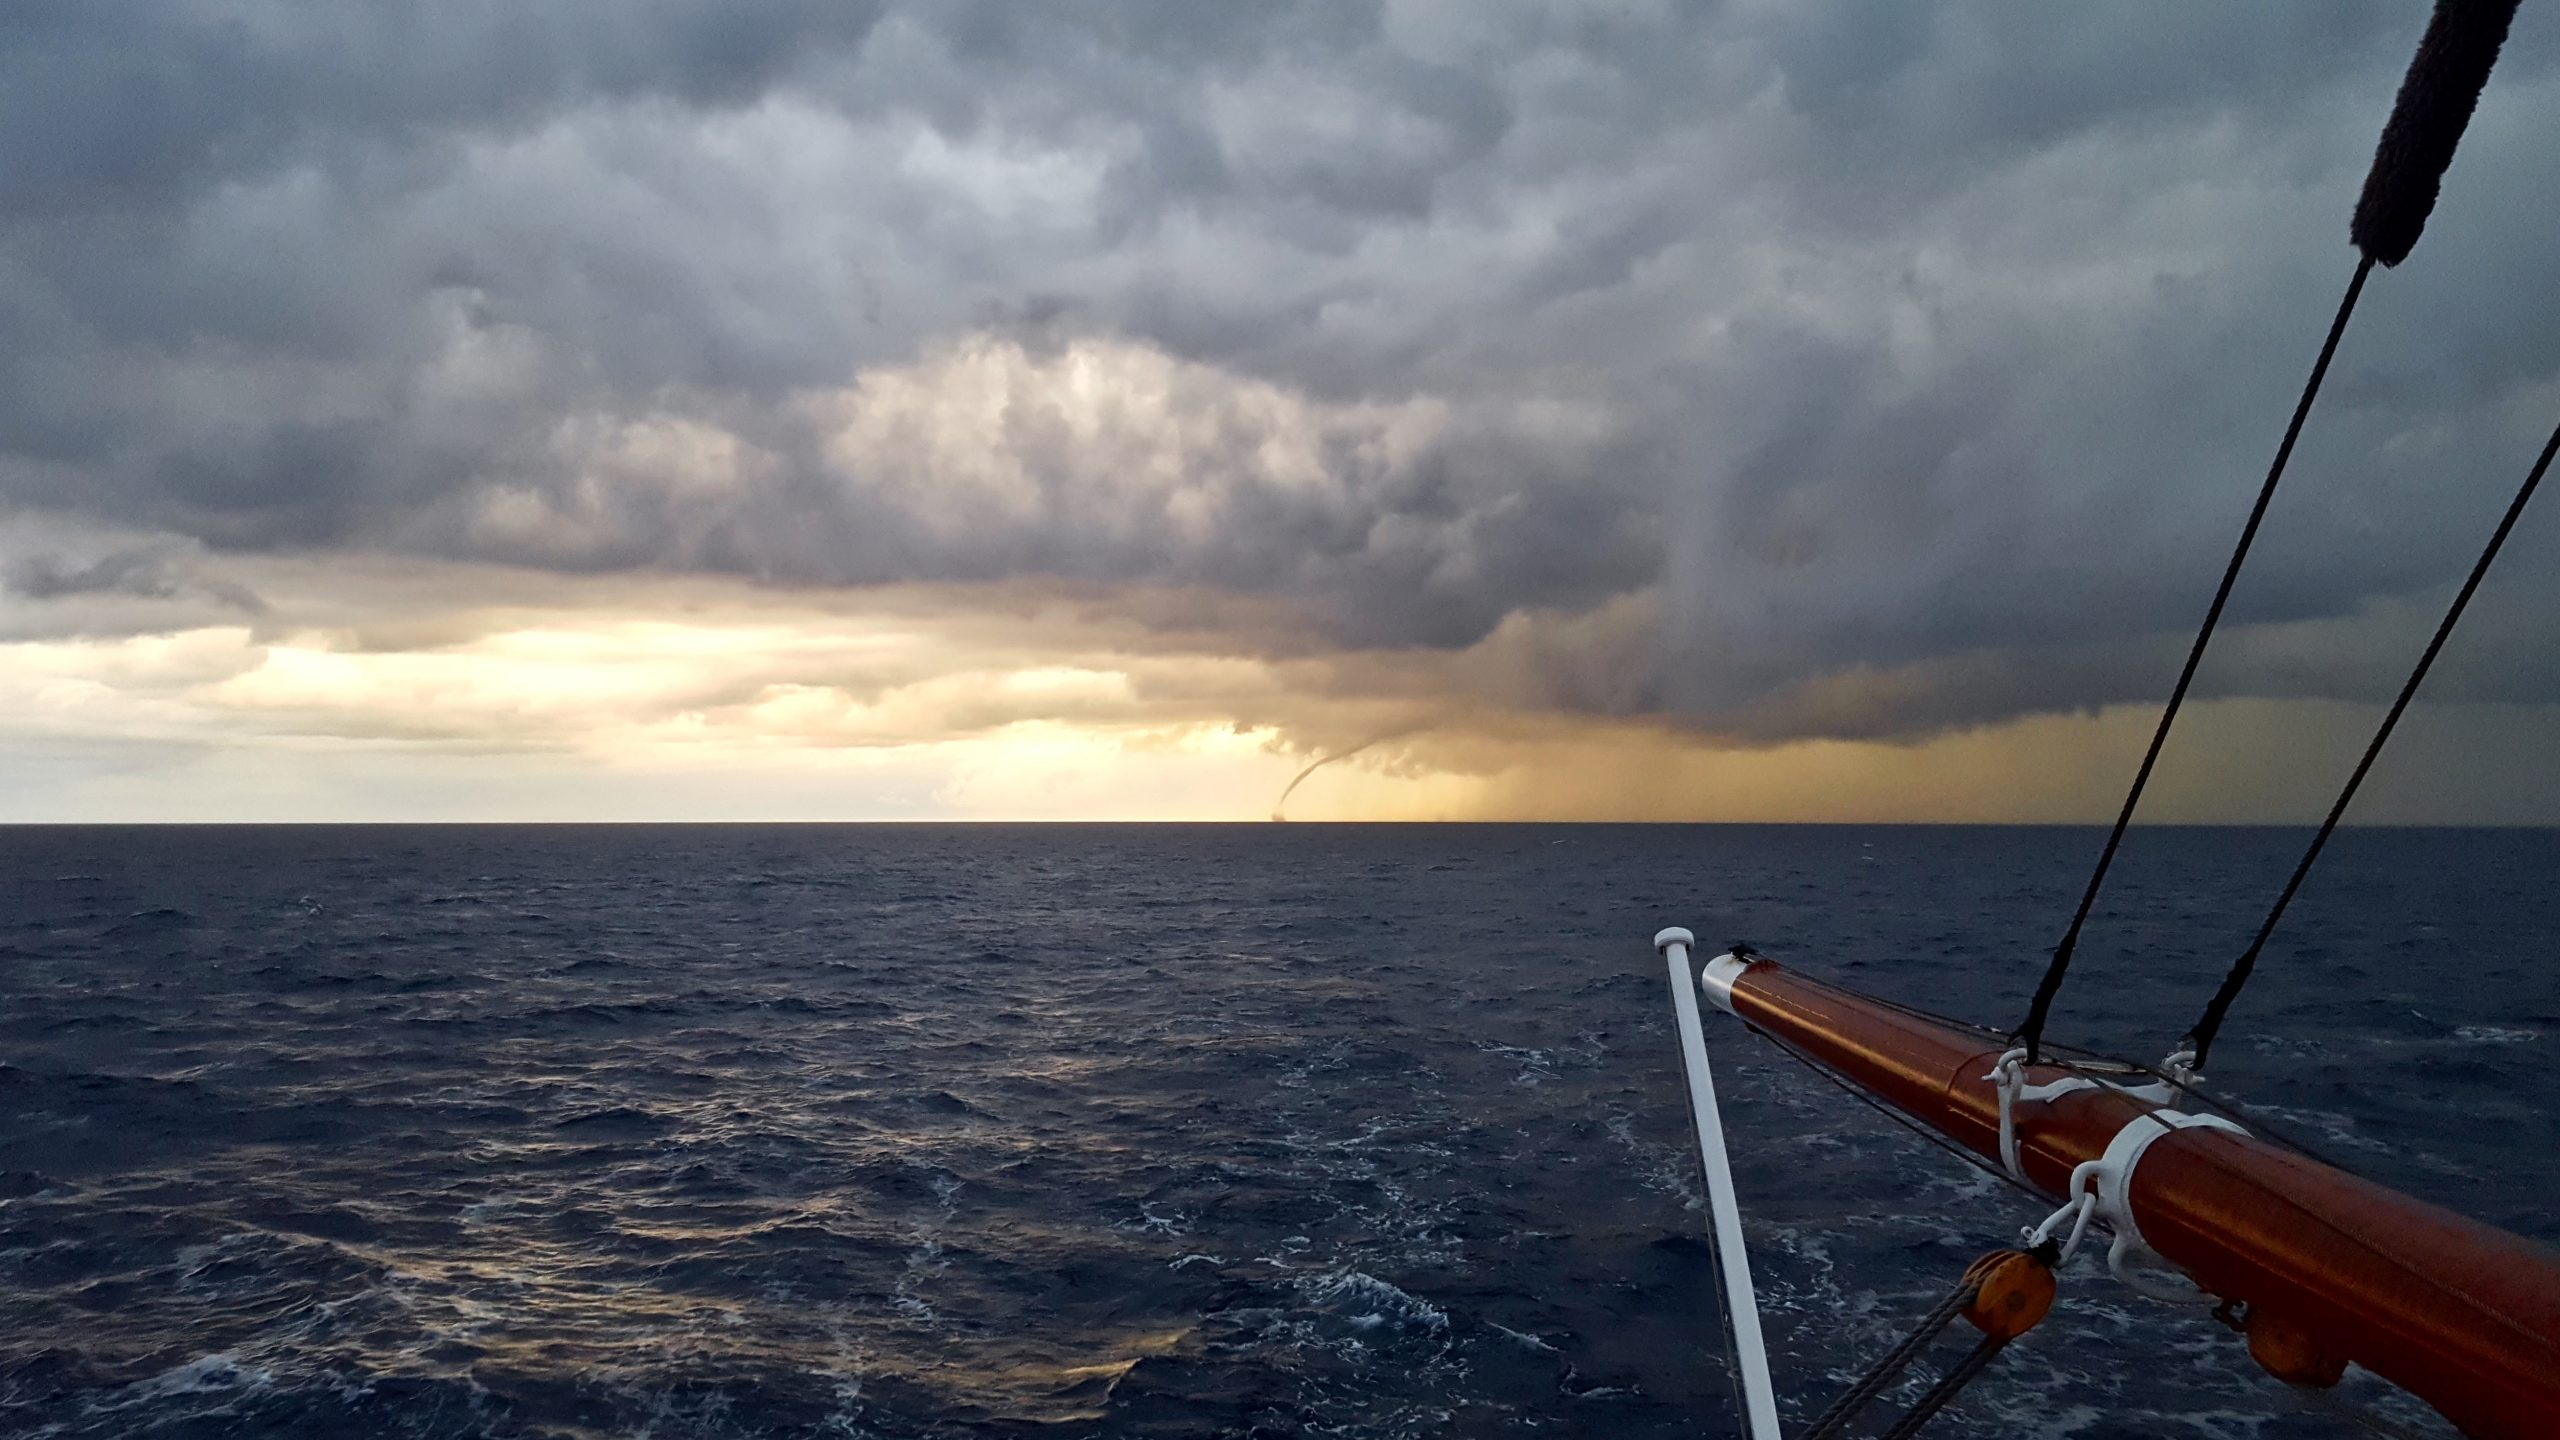 Sea-Cloud-Mittelmeer-15_5_19-©-Roman-Goly-scaled.jpeg